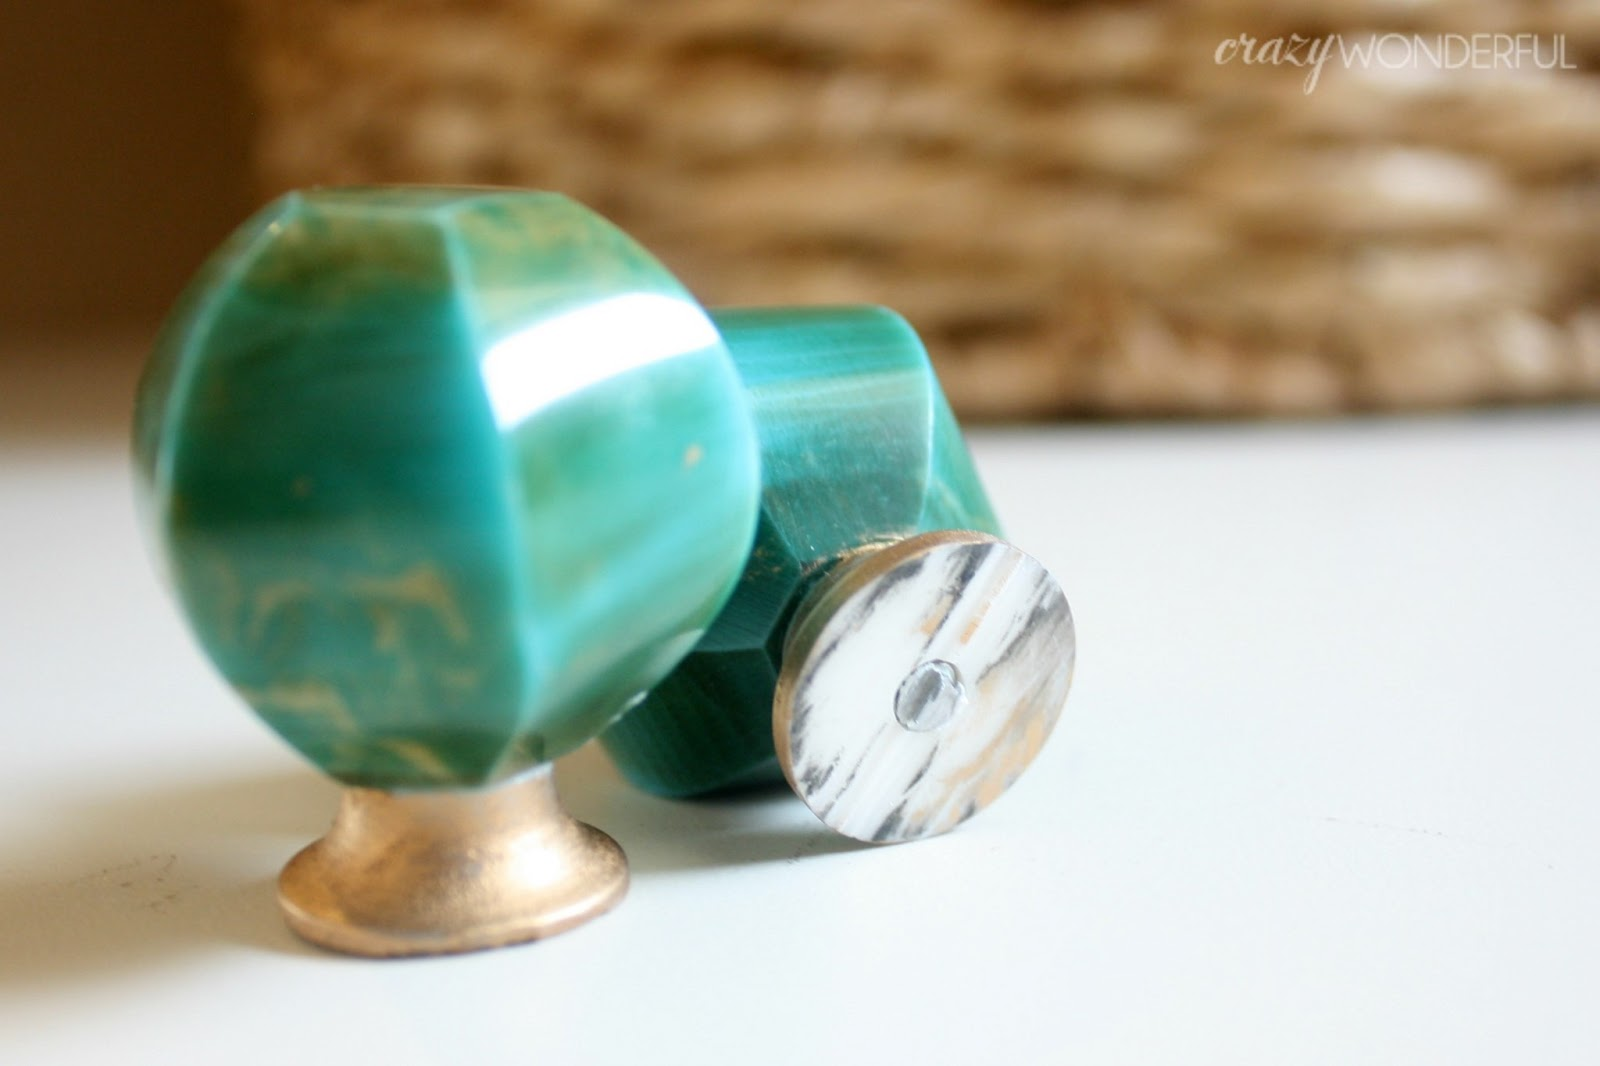 Diy Cabinet Knobs Crazy Wonderful Add Knobs Without Drilling Holes